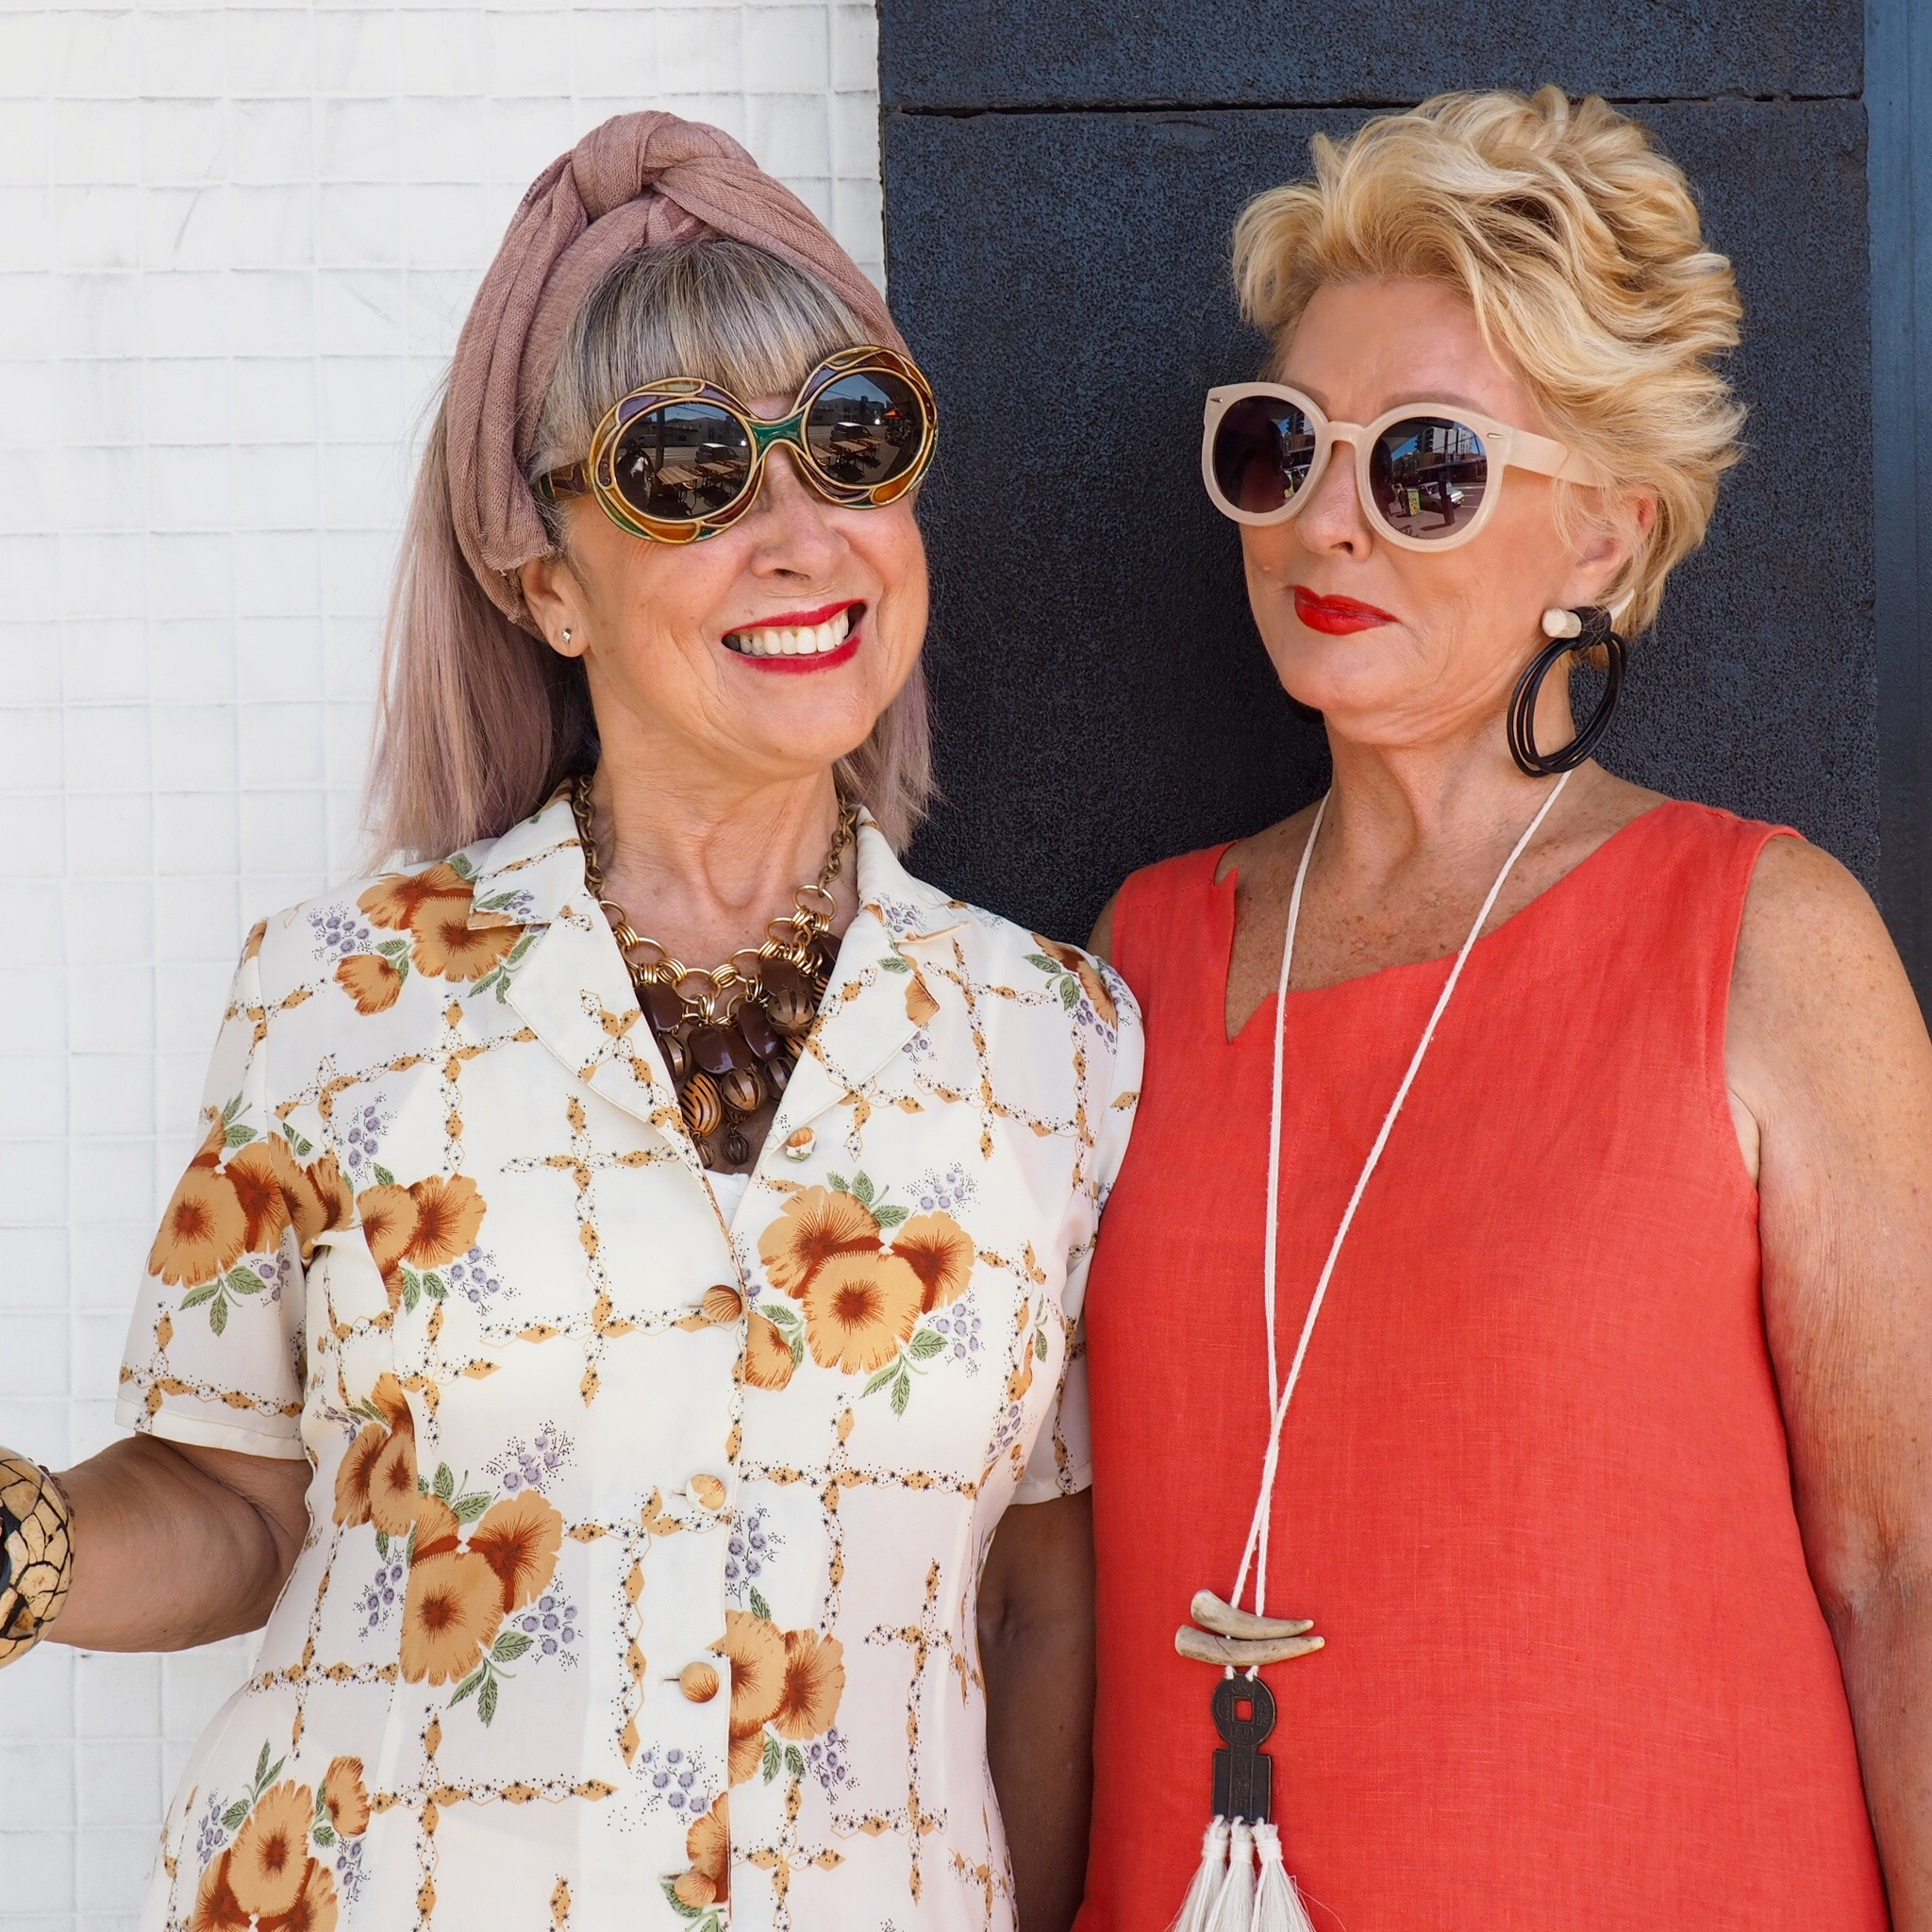 My $15 vintage dress. Vintage sunnies. With The Stylish Woman, Melbourne.